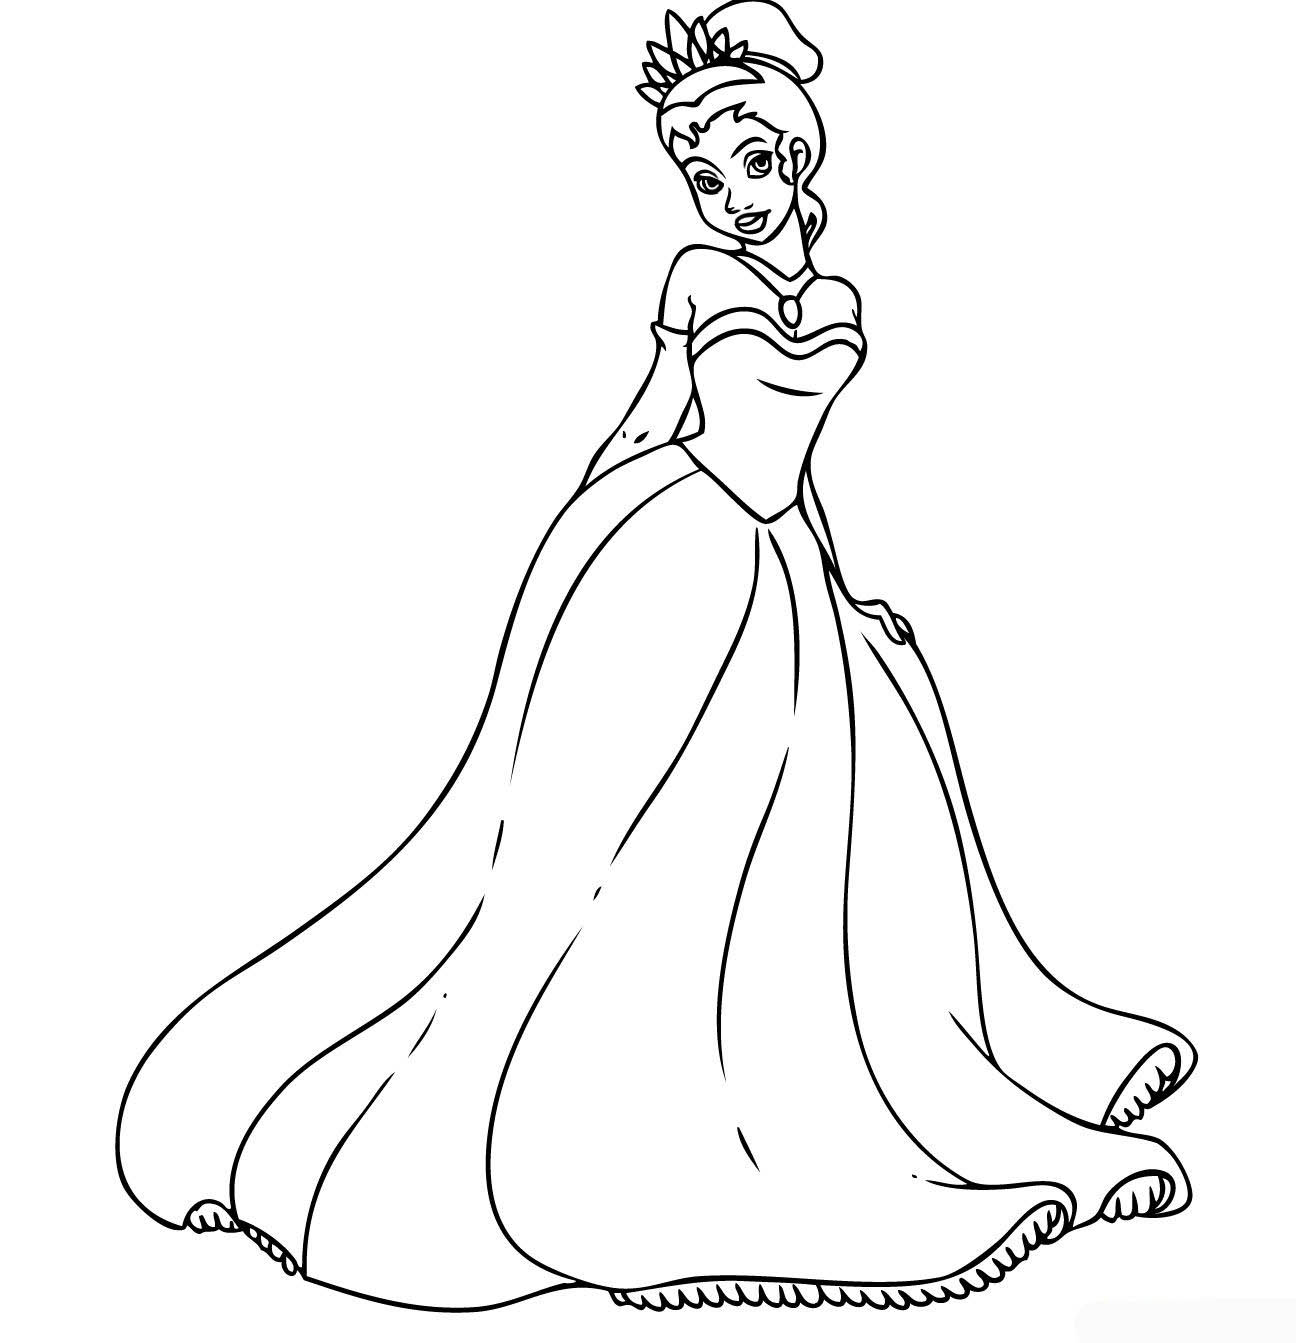 Printable Princess Tiana Coloring Pages Coloring Me Princess Printables